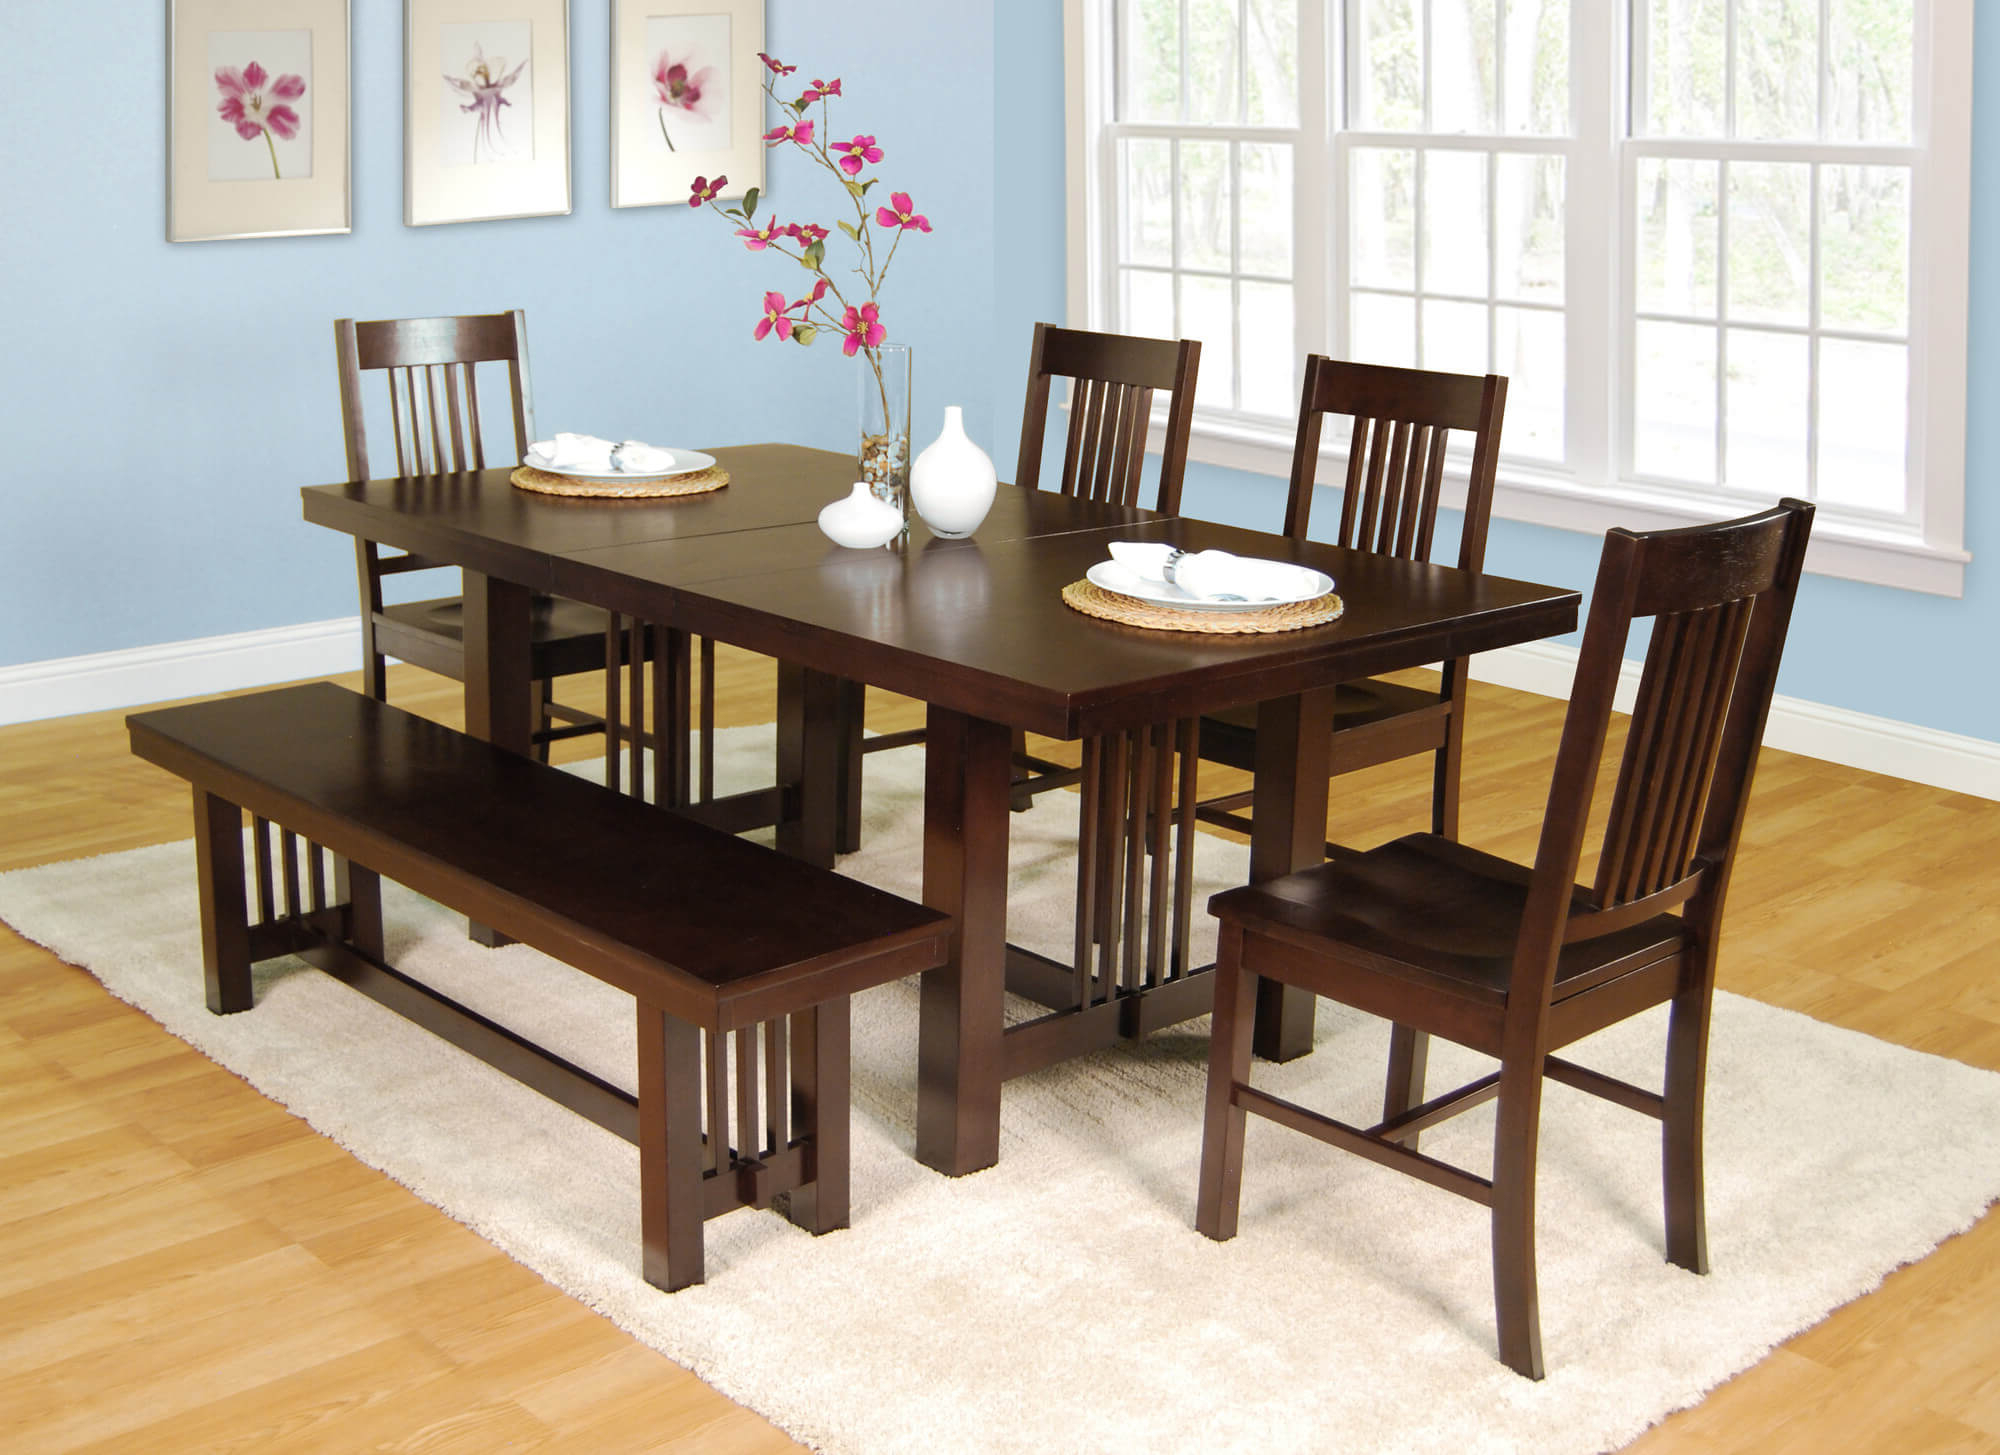 10 Modern Walnut Finish Dining Room Table Set Furniture Regarding Famous Contemporary 4 Seating Oblong Dining Tables (Gallery 8 of 30)